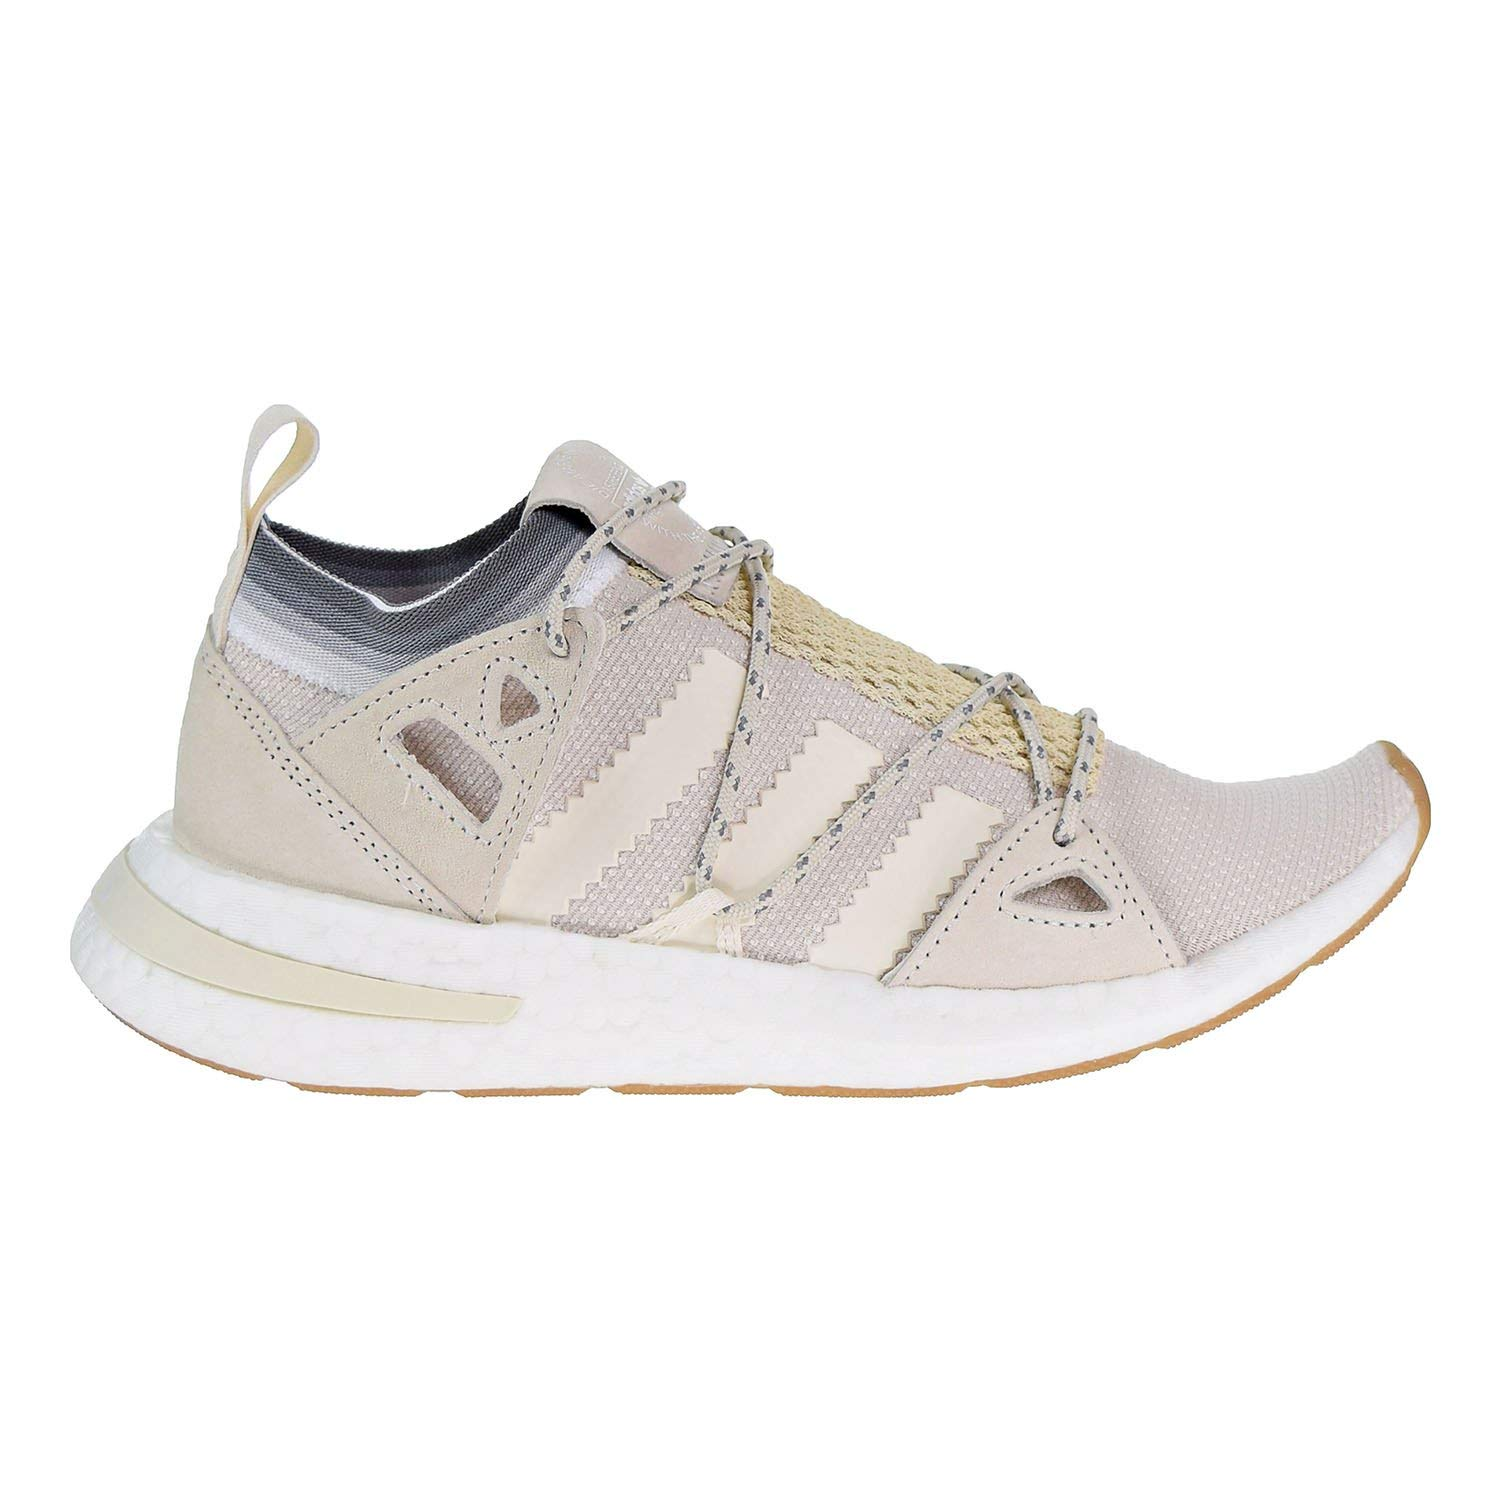 hot sale online c09d6 9f777 Get Quotations · adidas Arkyn Womens Running Shoes Chalk WhiteFootwear  WhiteGum db1979 (5.5 M